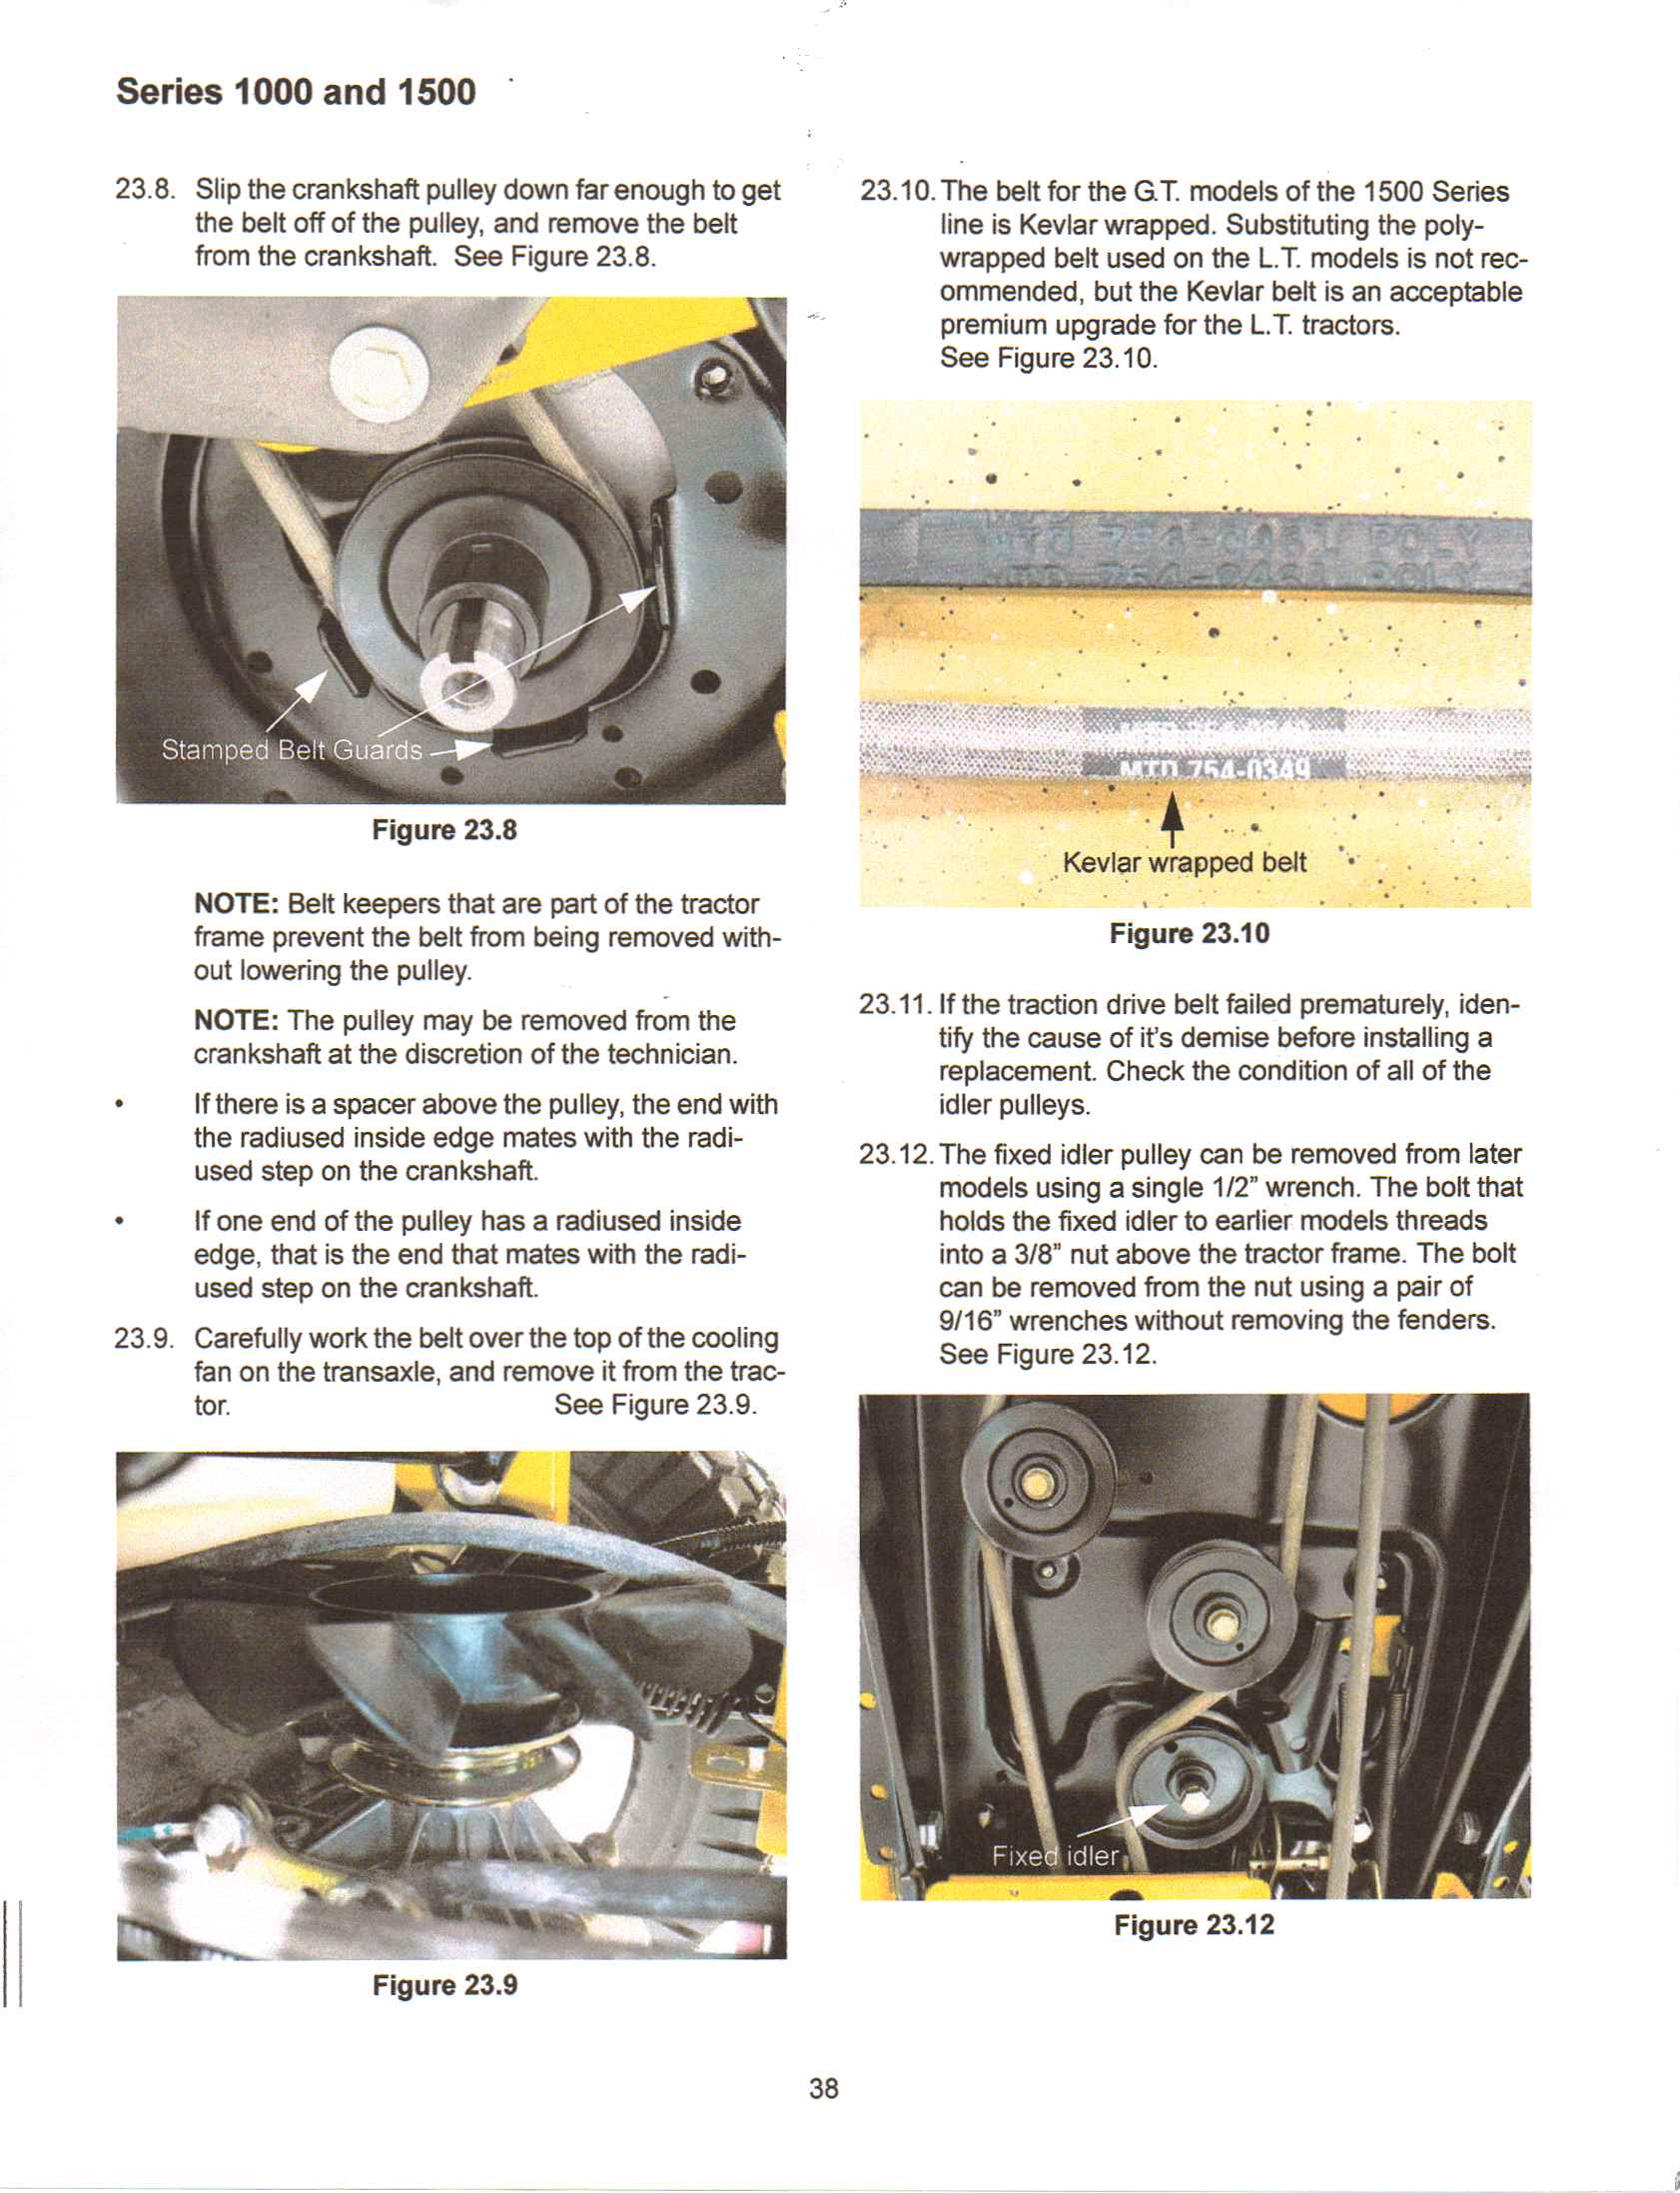 cub cadet lawn mower wiring diagram wirdig wiring diagram as well cub cadet wiring diagram as well cub cadet